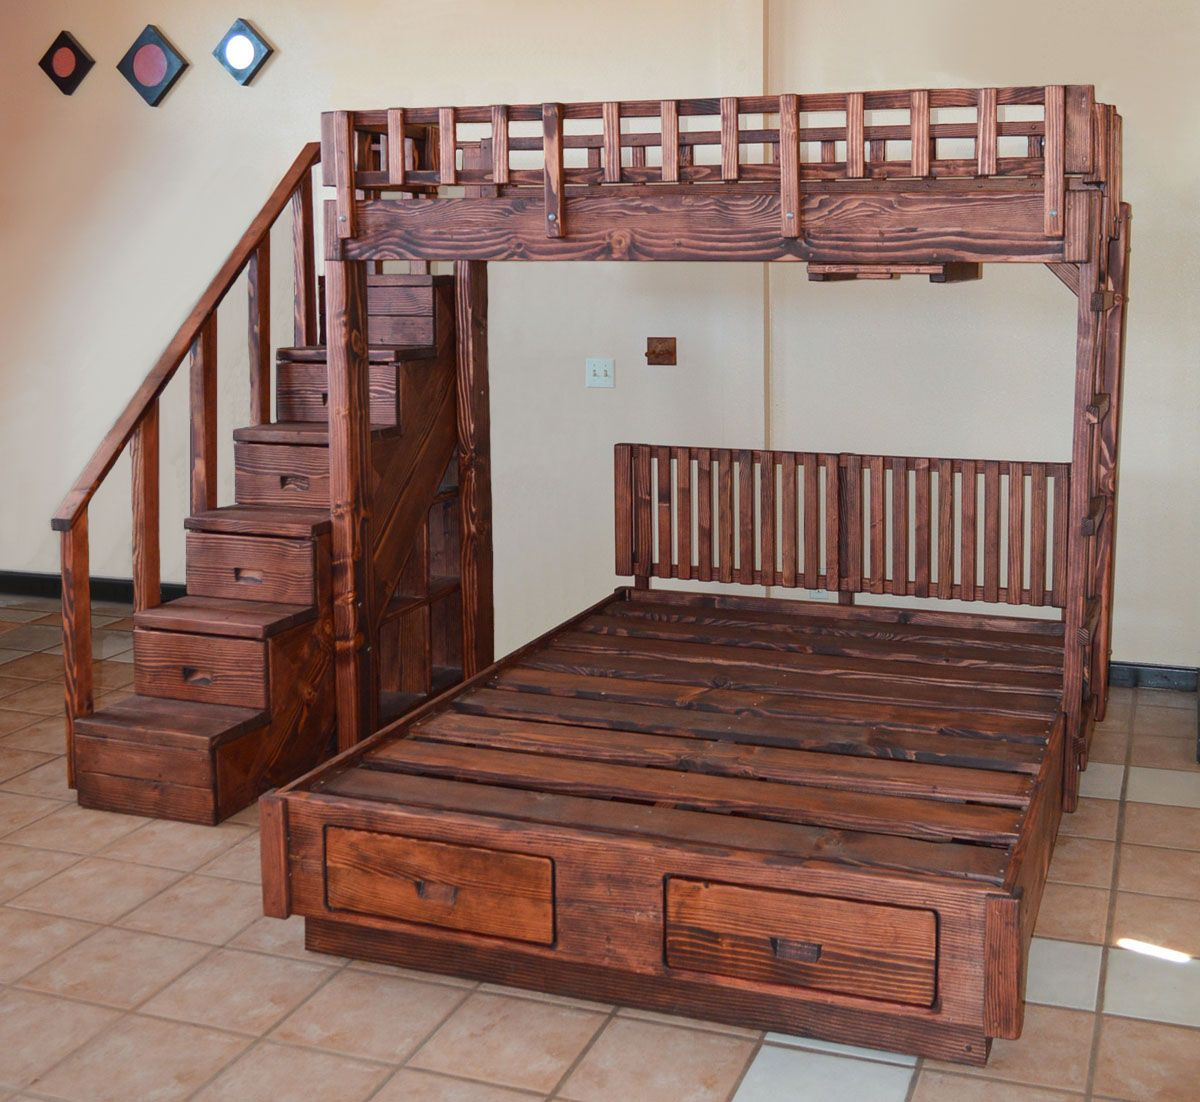 the stairway bunk set options twin top bed queen bottom bed redwood stairway with drawers. Black Bedroom Furniture Sets. Home Design Ideas